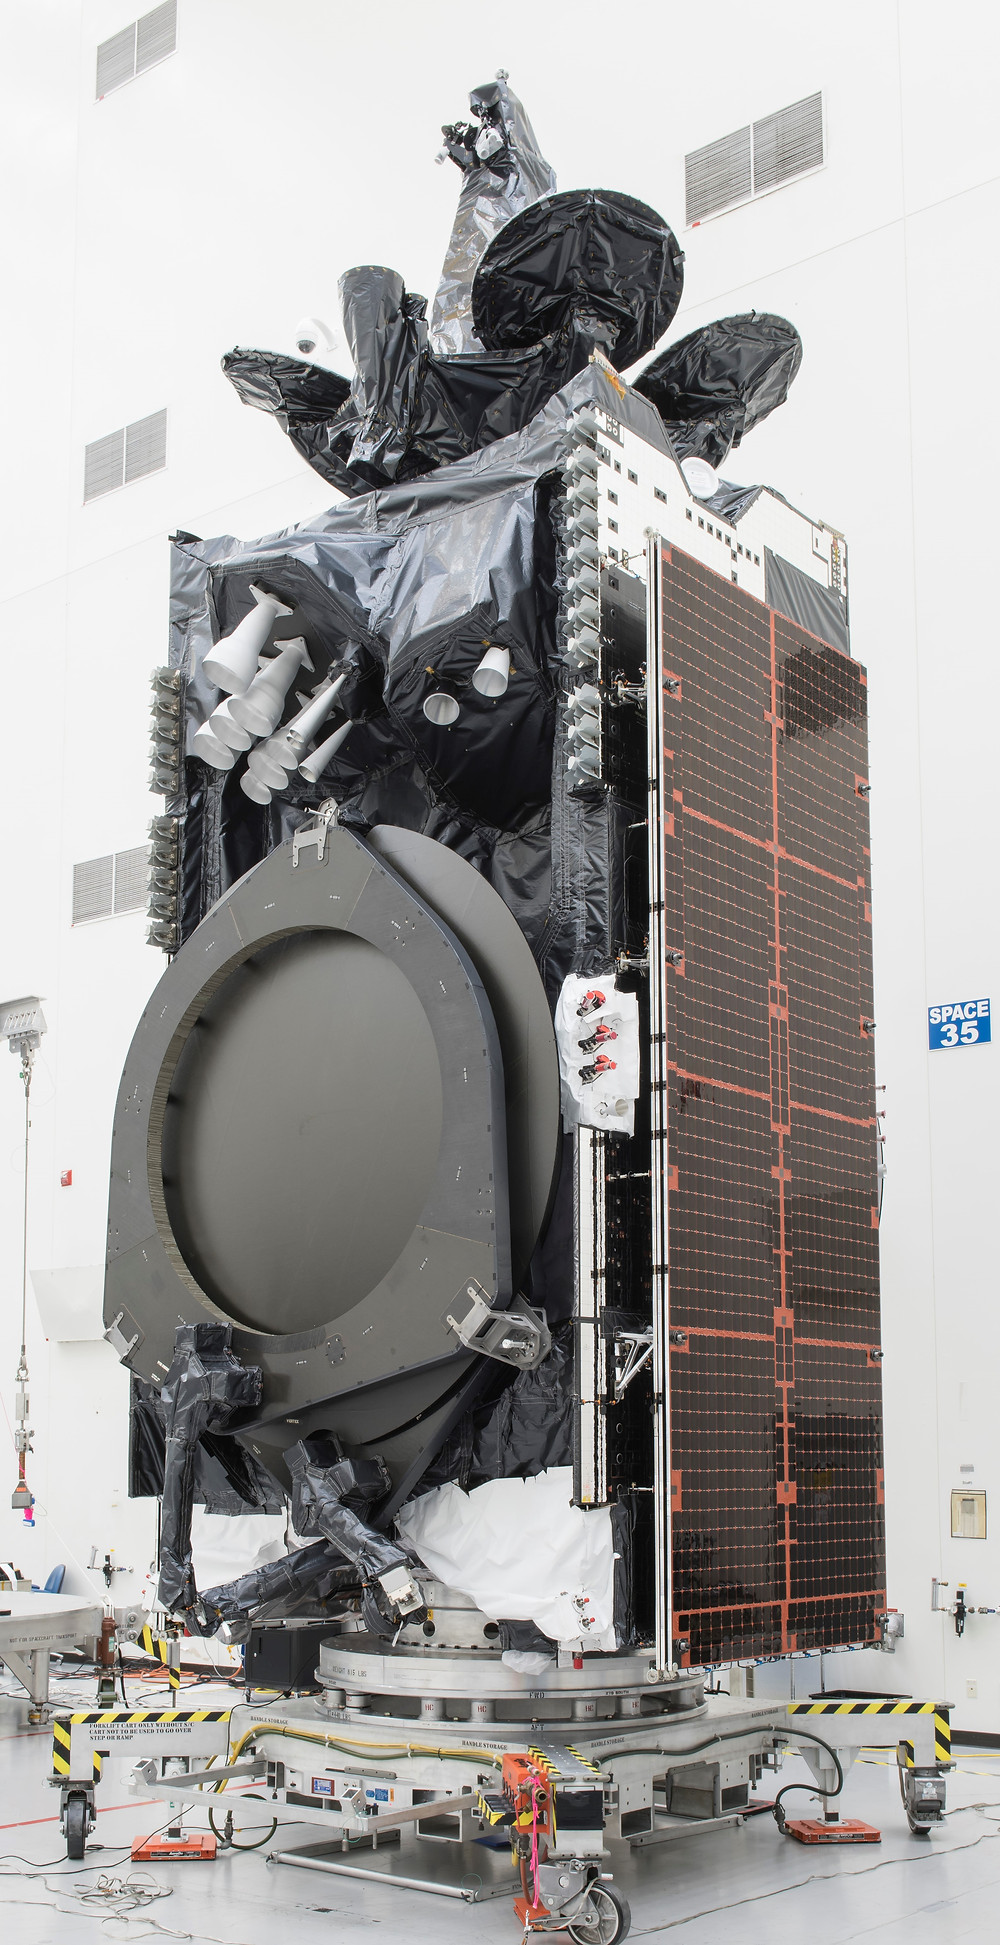 Spacecom completing final AMOS-17 Satellite pre-launch preparations